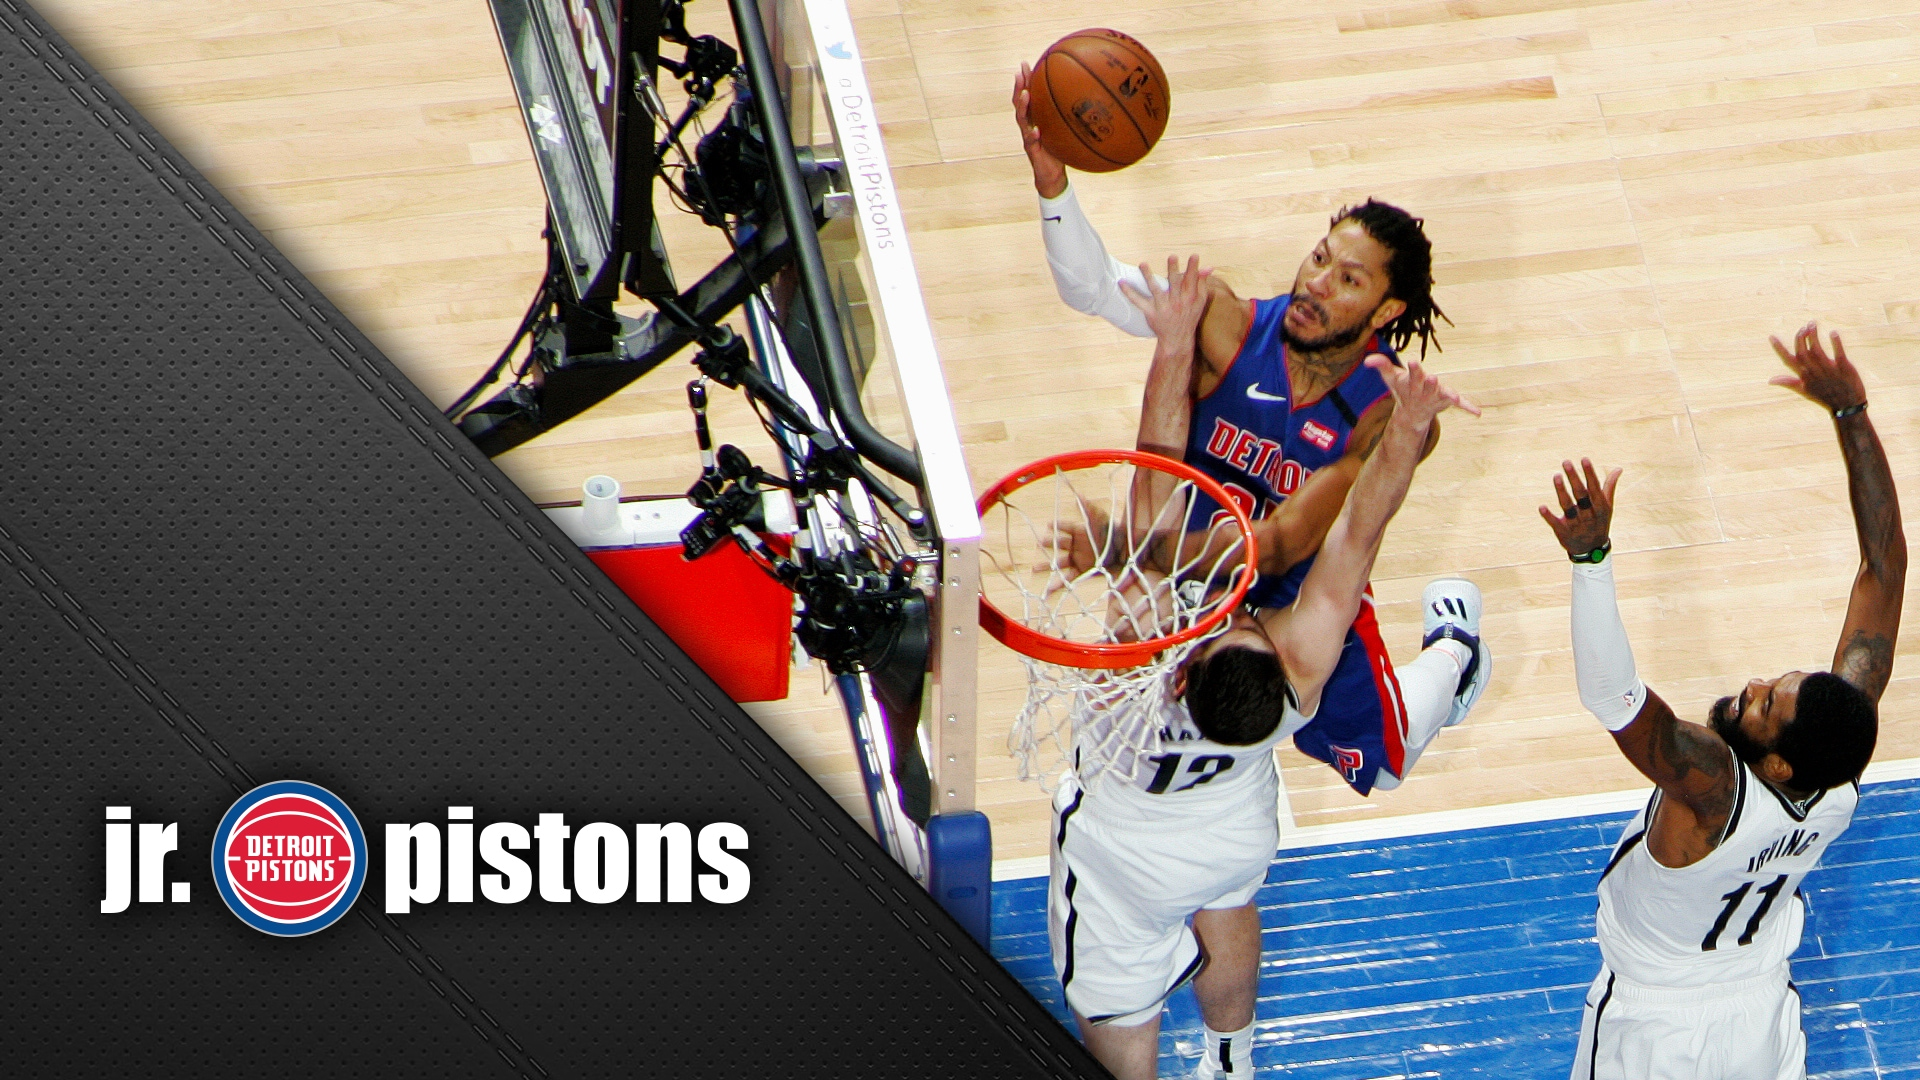 Jr. Pistons Skill Sessions: Attacking the Lead Foot